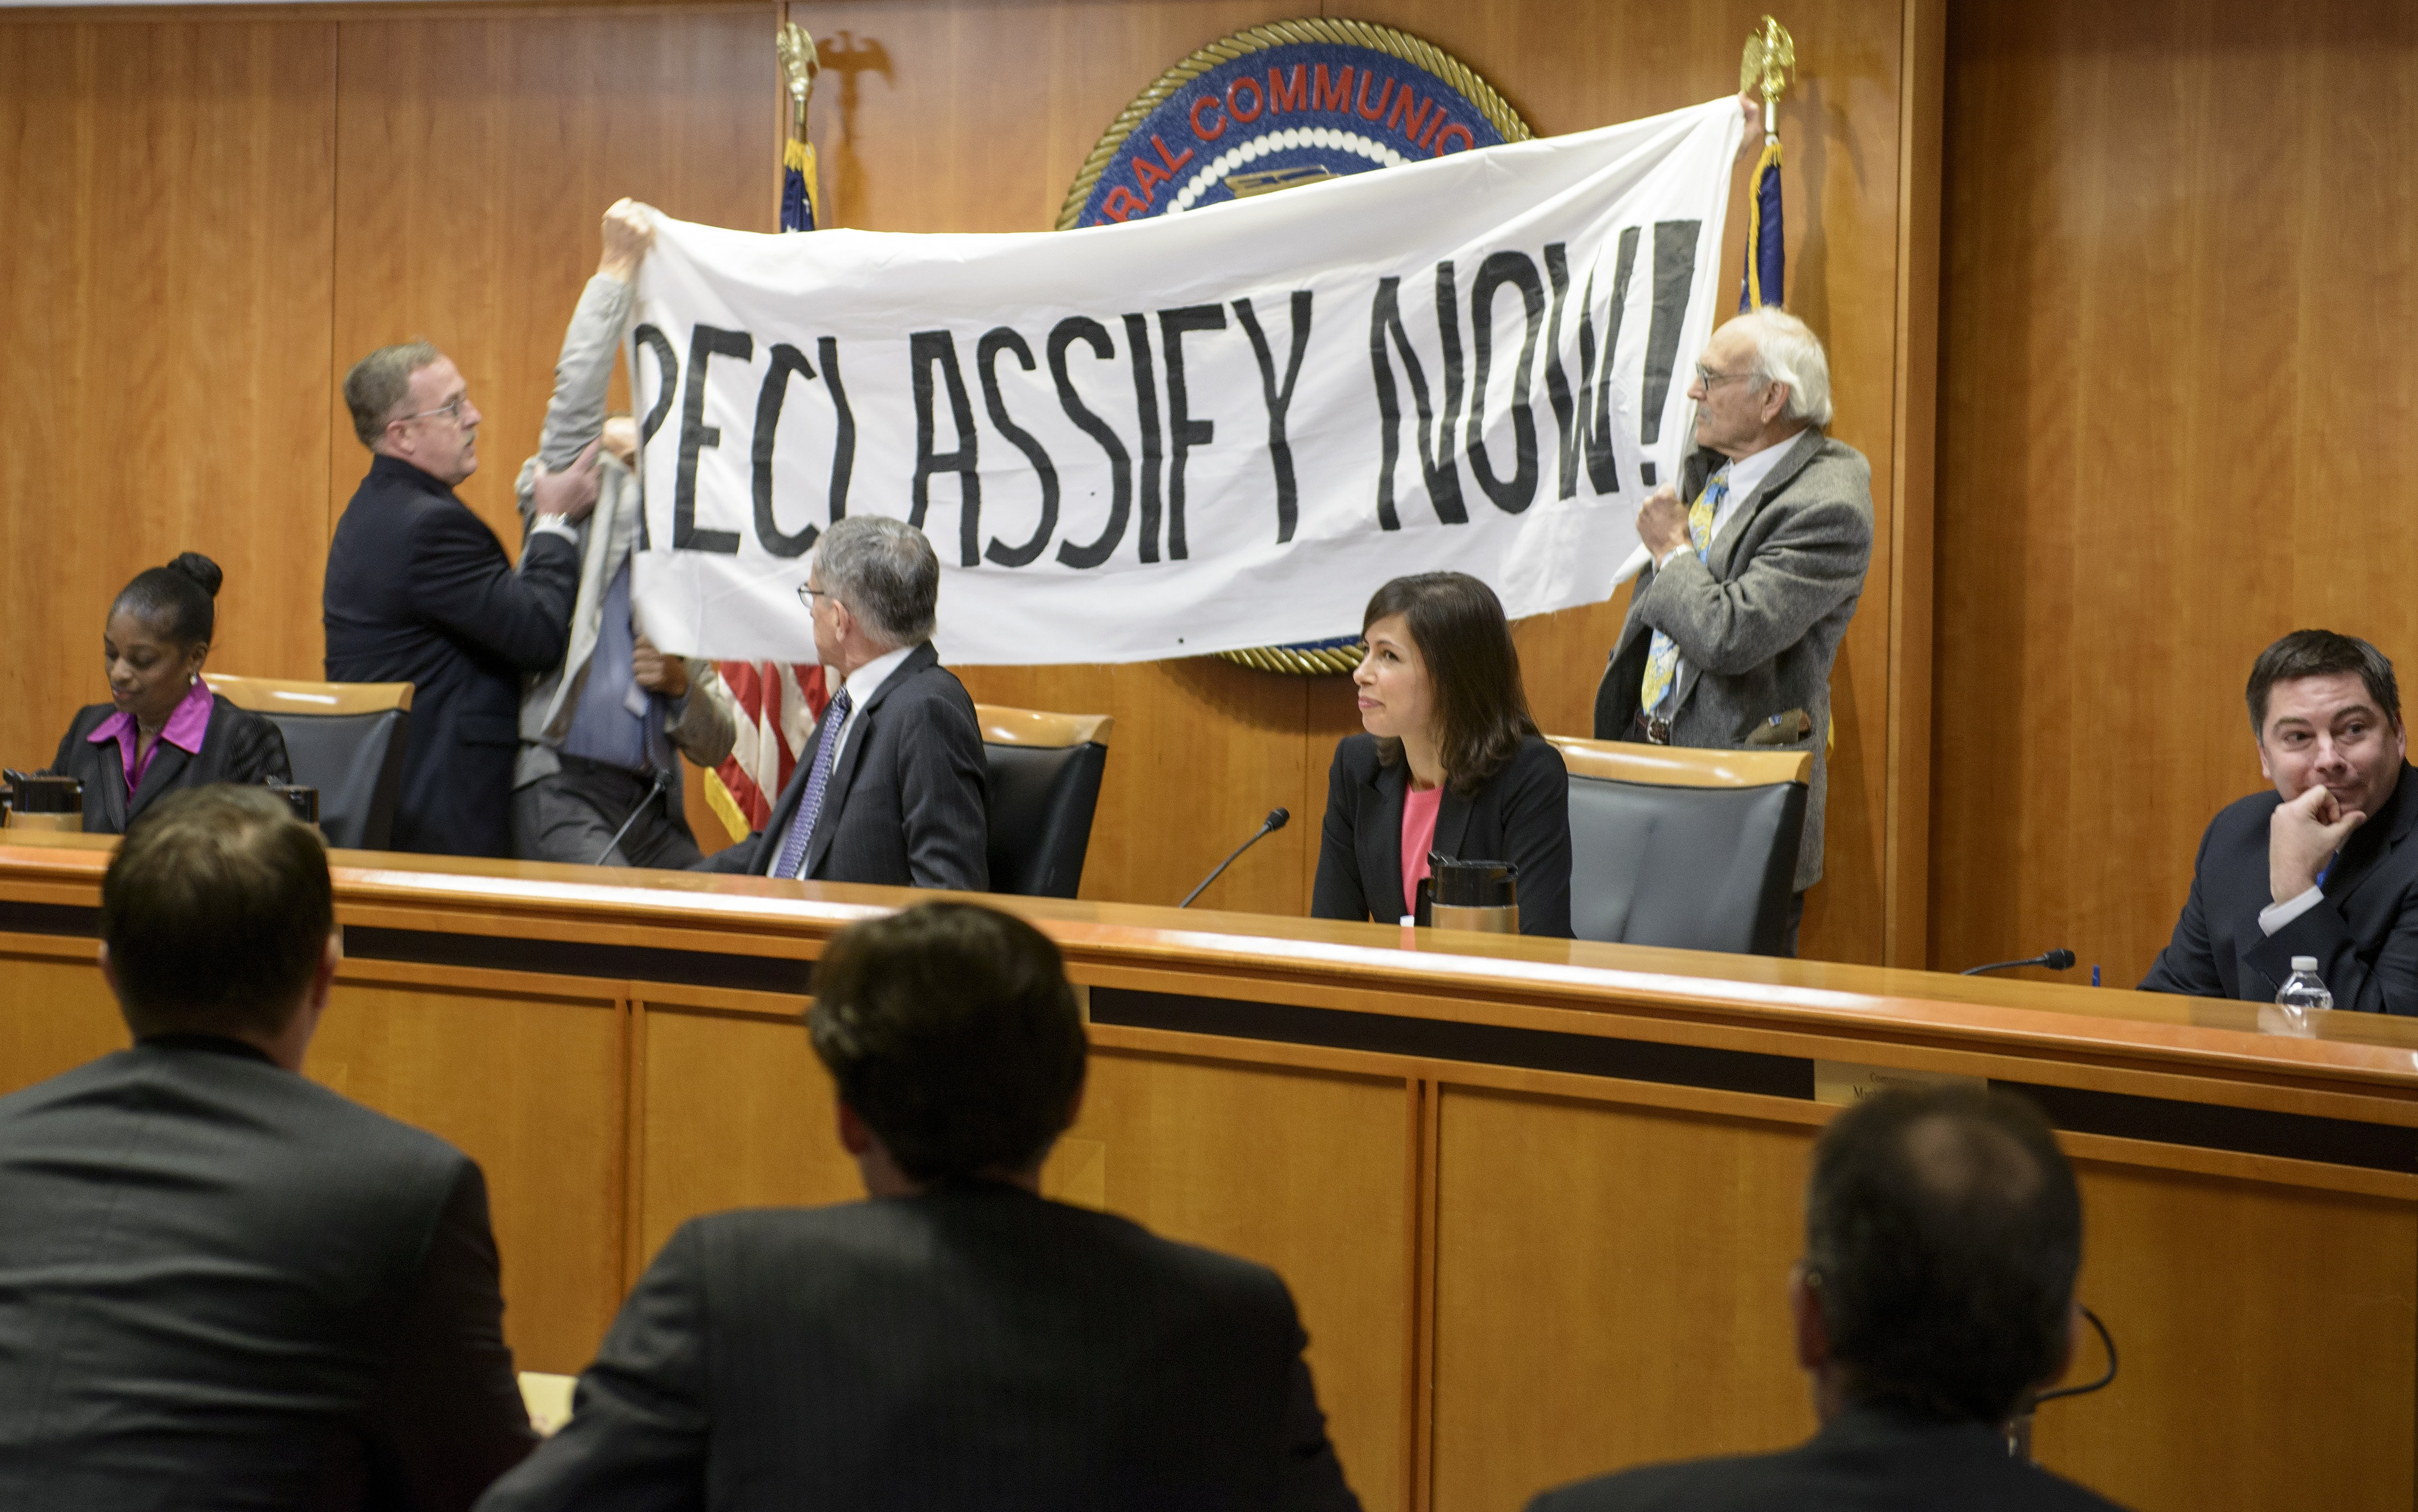 From left to right: Commissioner Mignon Clyburn, Chairman Tom Wheeler, Commissioner Jessica Rosenworcel and Commissioner Michael O'Rielly watch as pro-Net neutrality protesters are removed from the dais during a hearing at the FCC this past December.